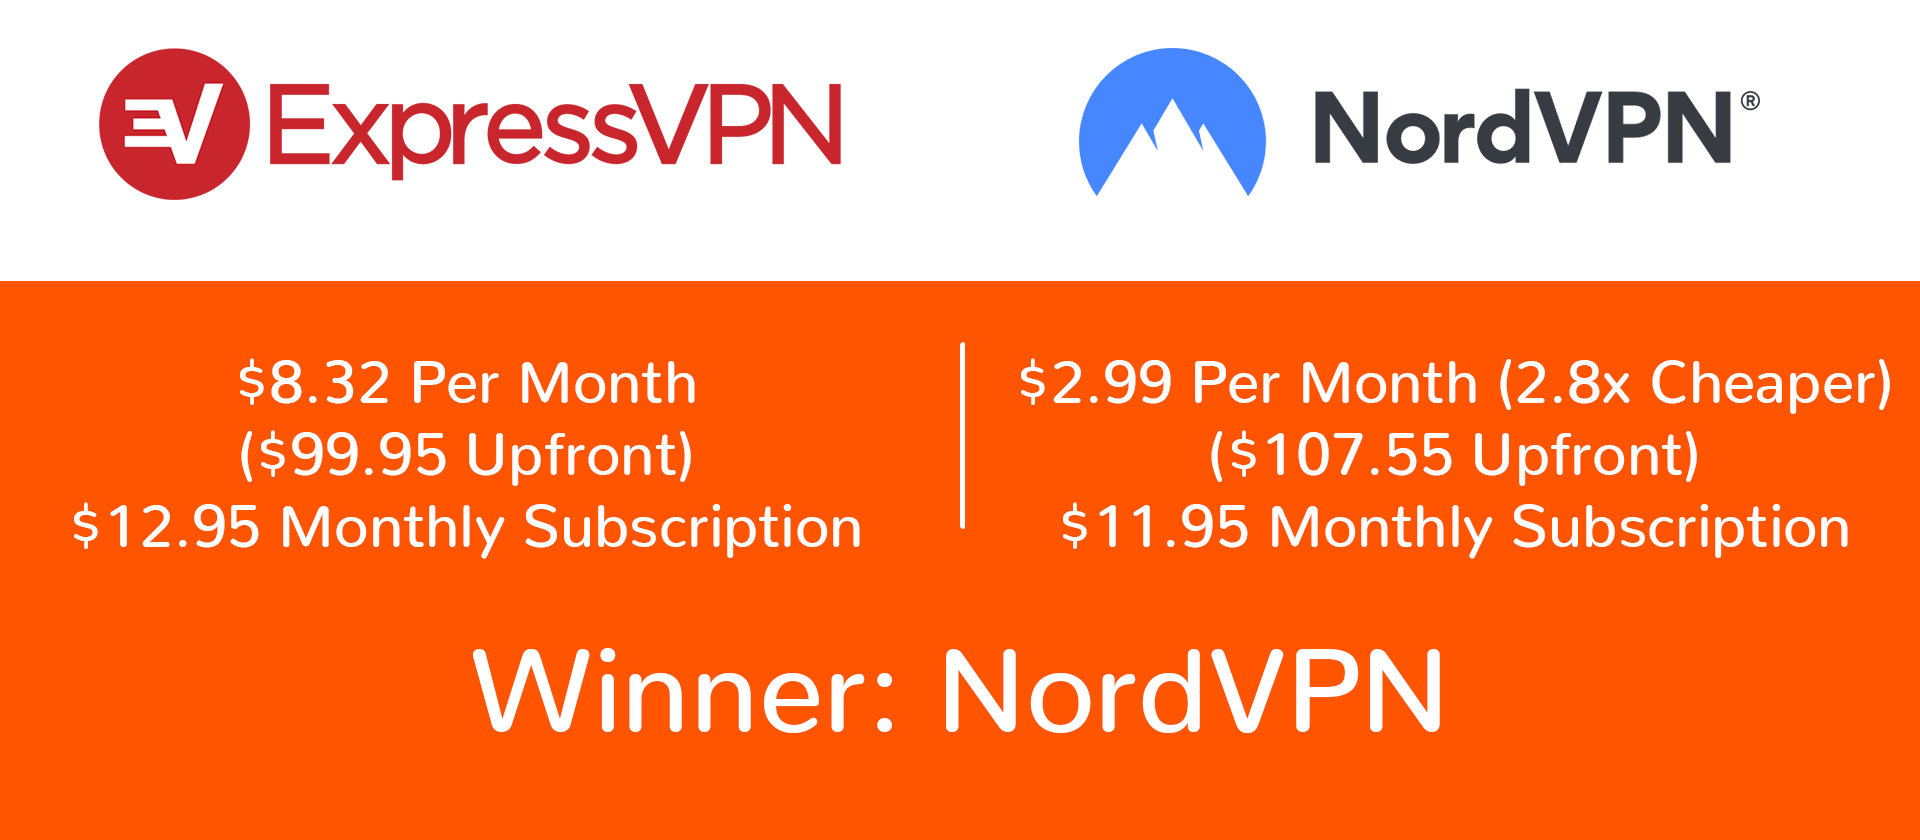 nordvpn expressvpn pricing and plans